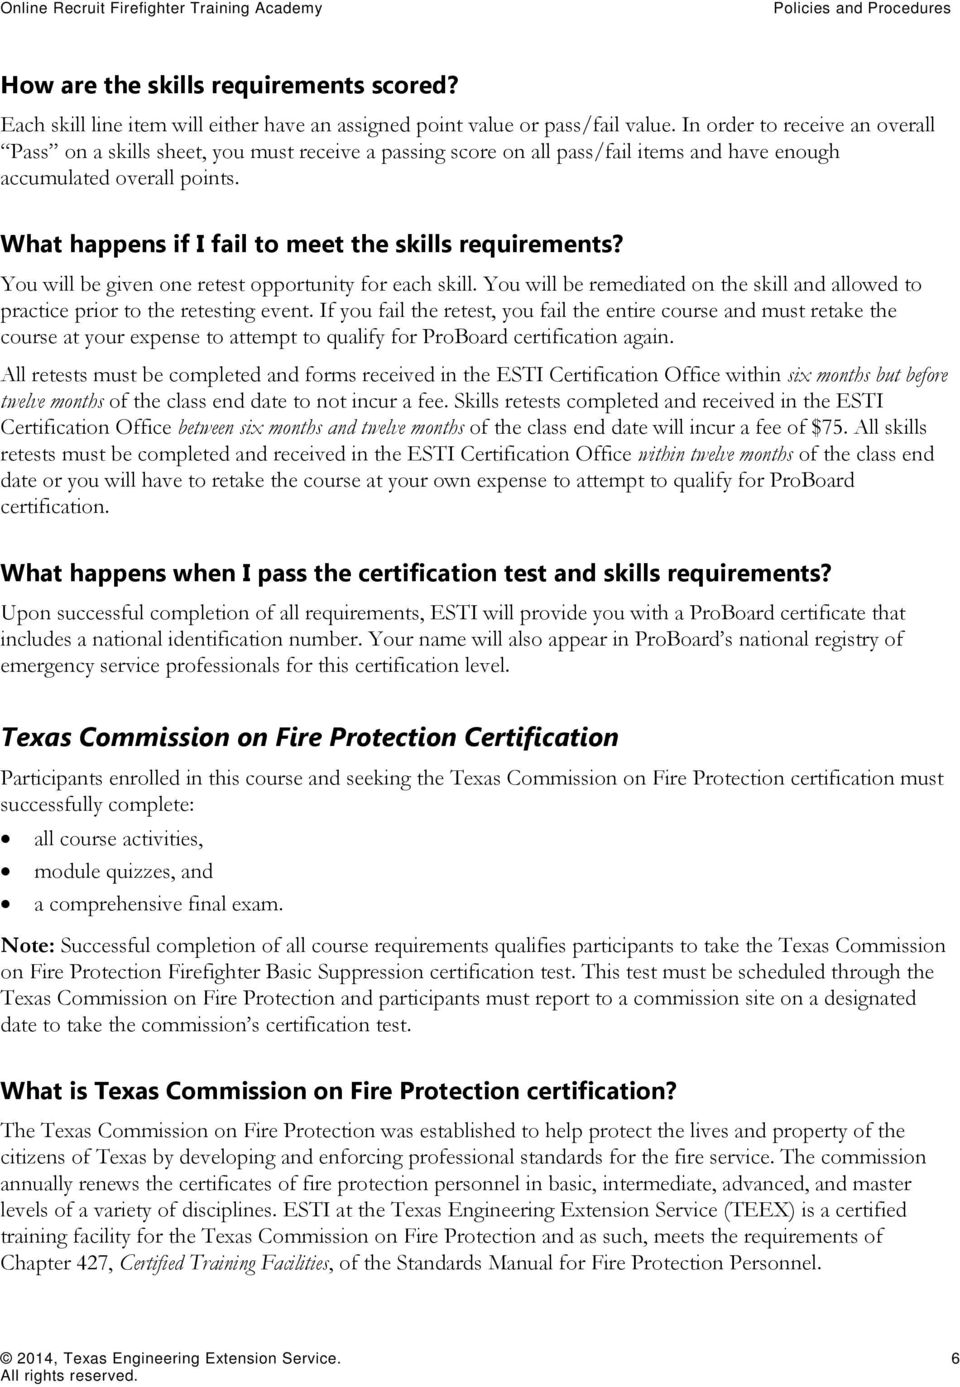 Online Recruit Firefighter Training Academy Policies And Procedures